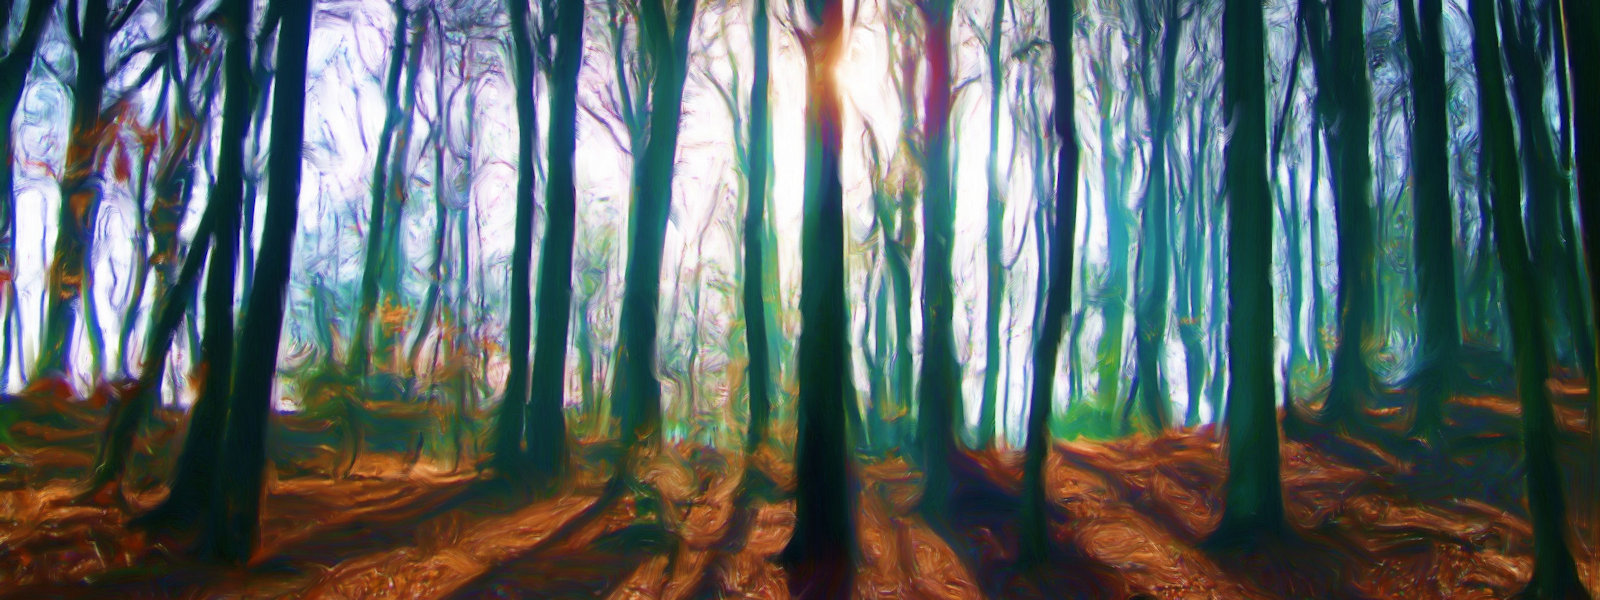 Marlow Common Wood (Seurat Painting Style), Marlow, UK